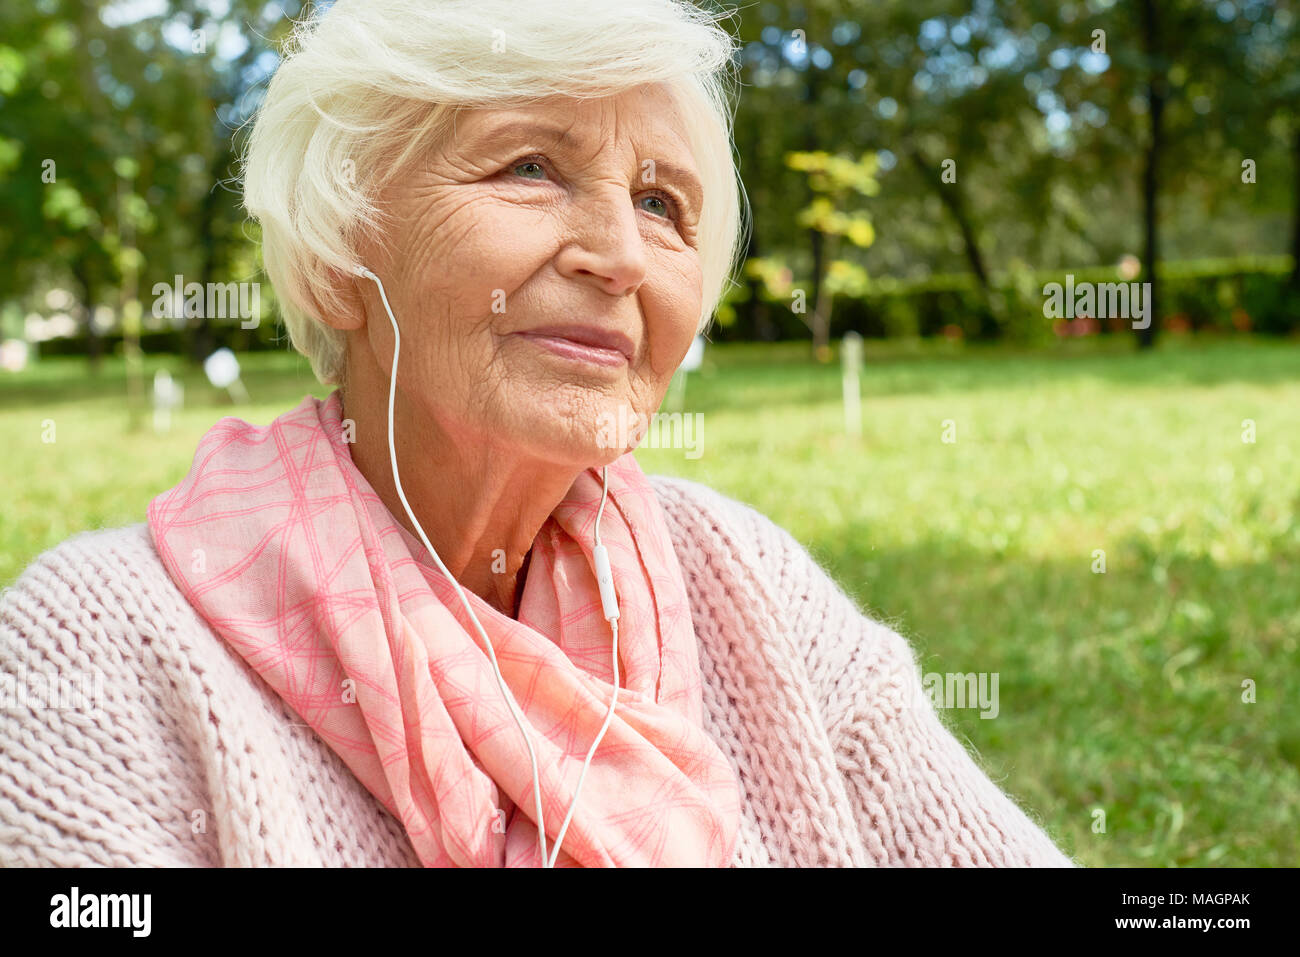 Senior Woman Enjoying Music - Stock Image